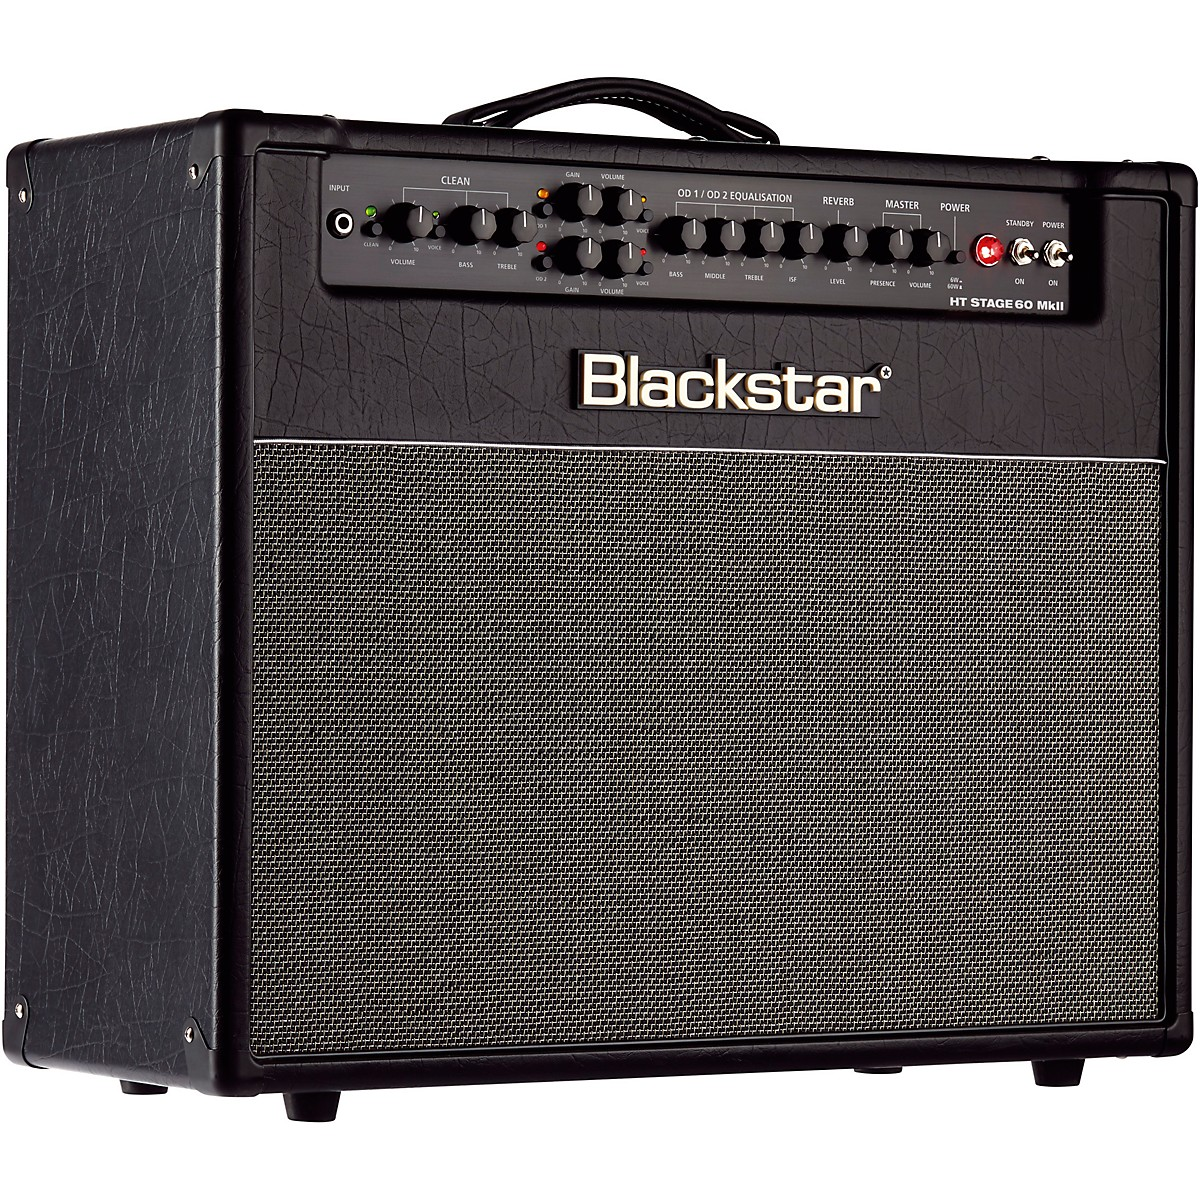 Blackstar HT Venue Series Stage 60 60W 1x12 Tube Guitar Combo Amp MKII